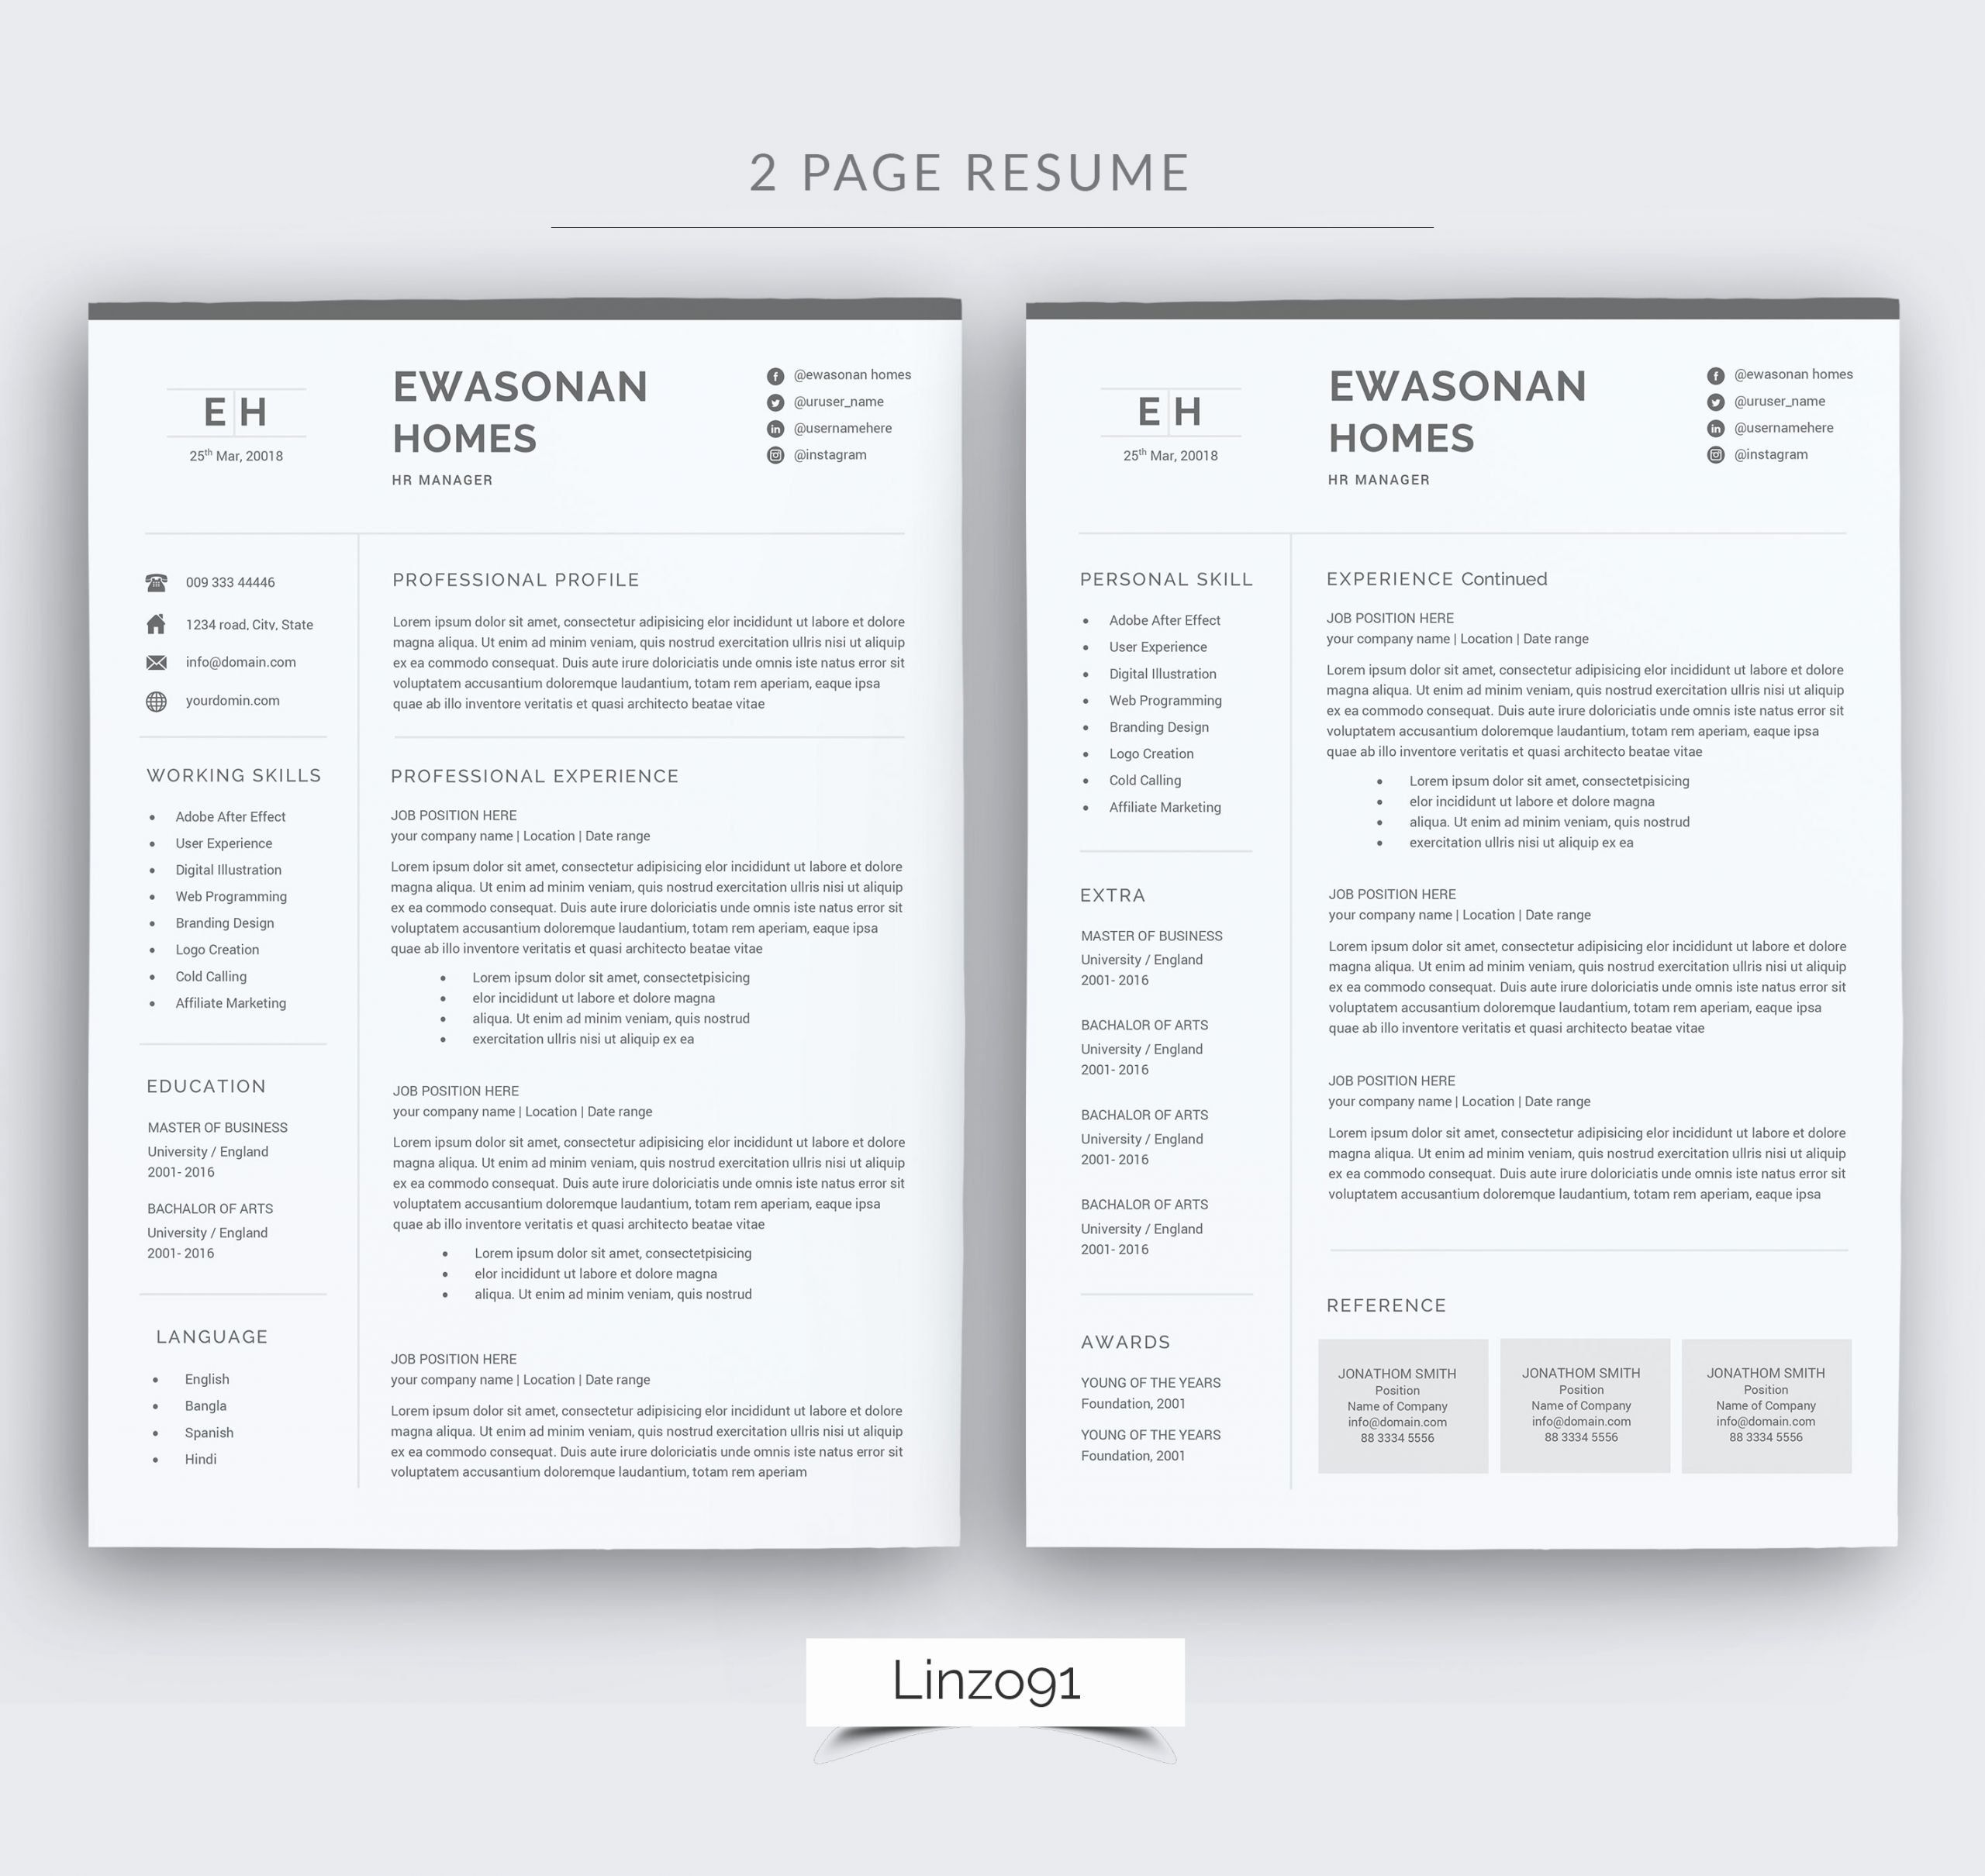 2 Page Resume Format Awesome Minimal Resume 3 Pages Cv Template For Word Two Page Cover Letter For Resume Resume Design Template Cover Page Template Word